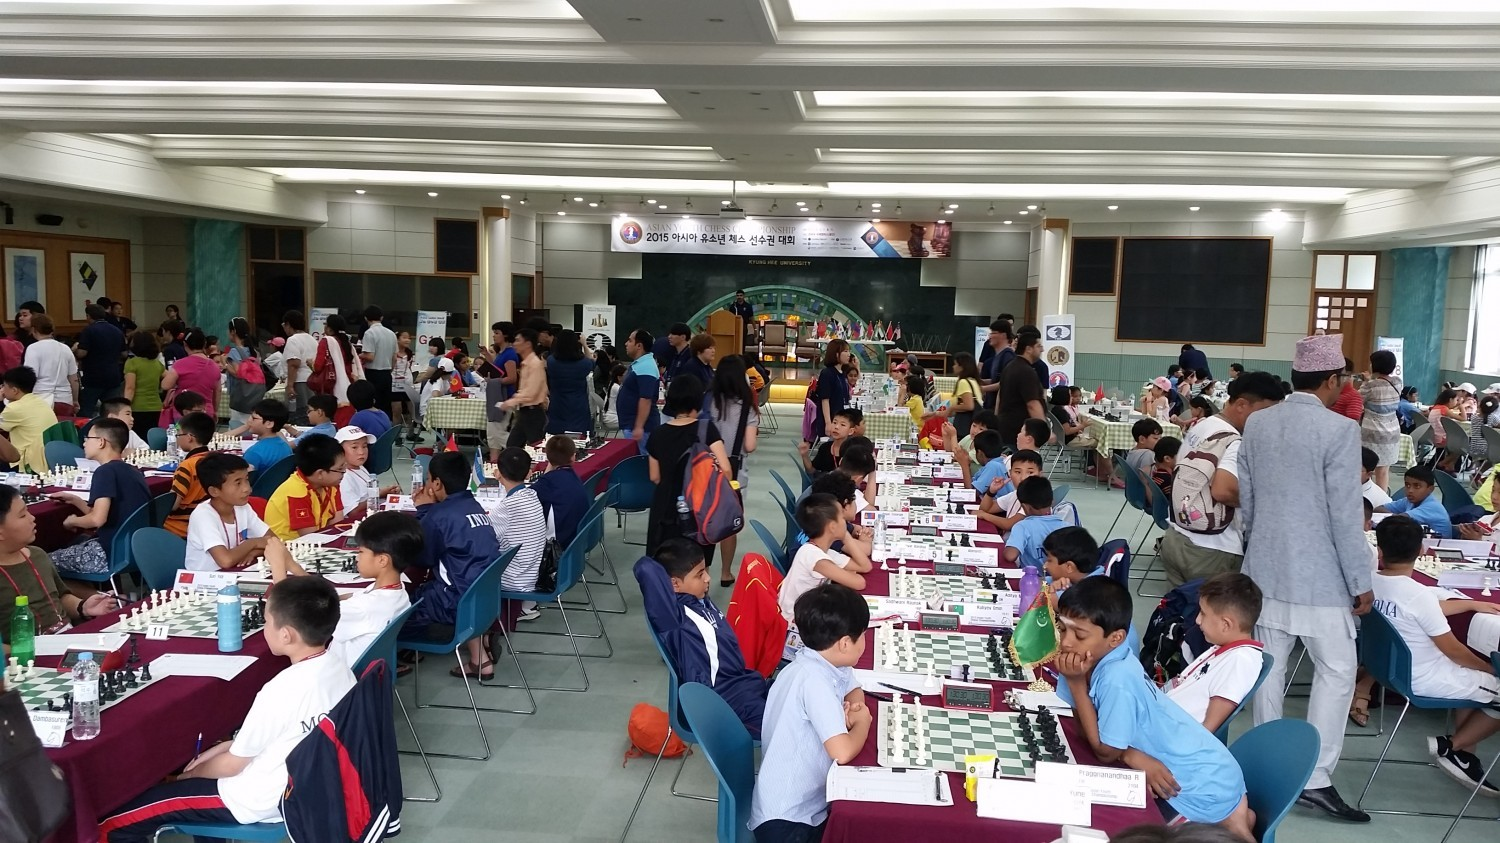 Of mongolia today tomorrow and the development bank of mongolia s - The Best Youth Chess Players Of Asia To Compete In Mongolia Asian Youth Chess Championship 2016 Will Take Place At Sports Complex Of Central Cultural Palace